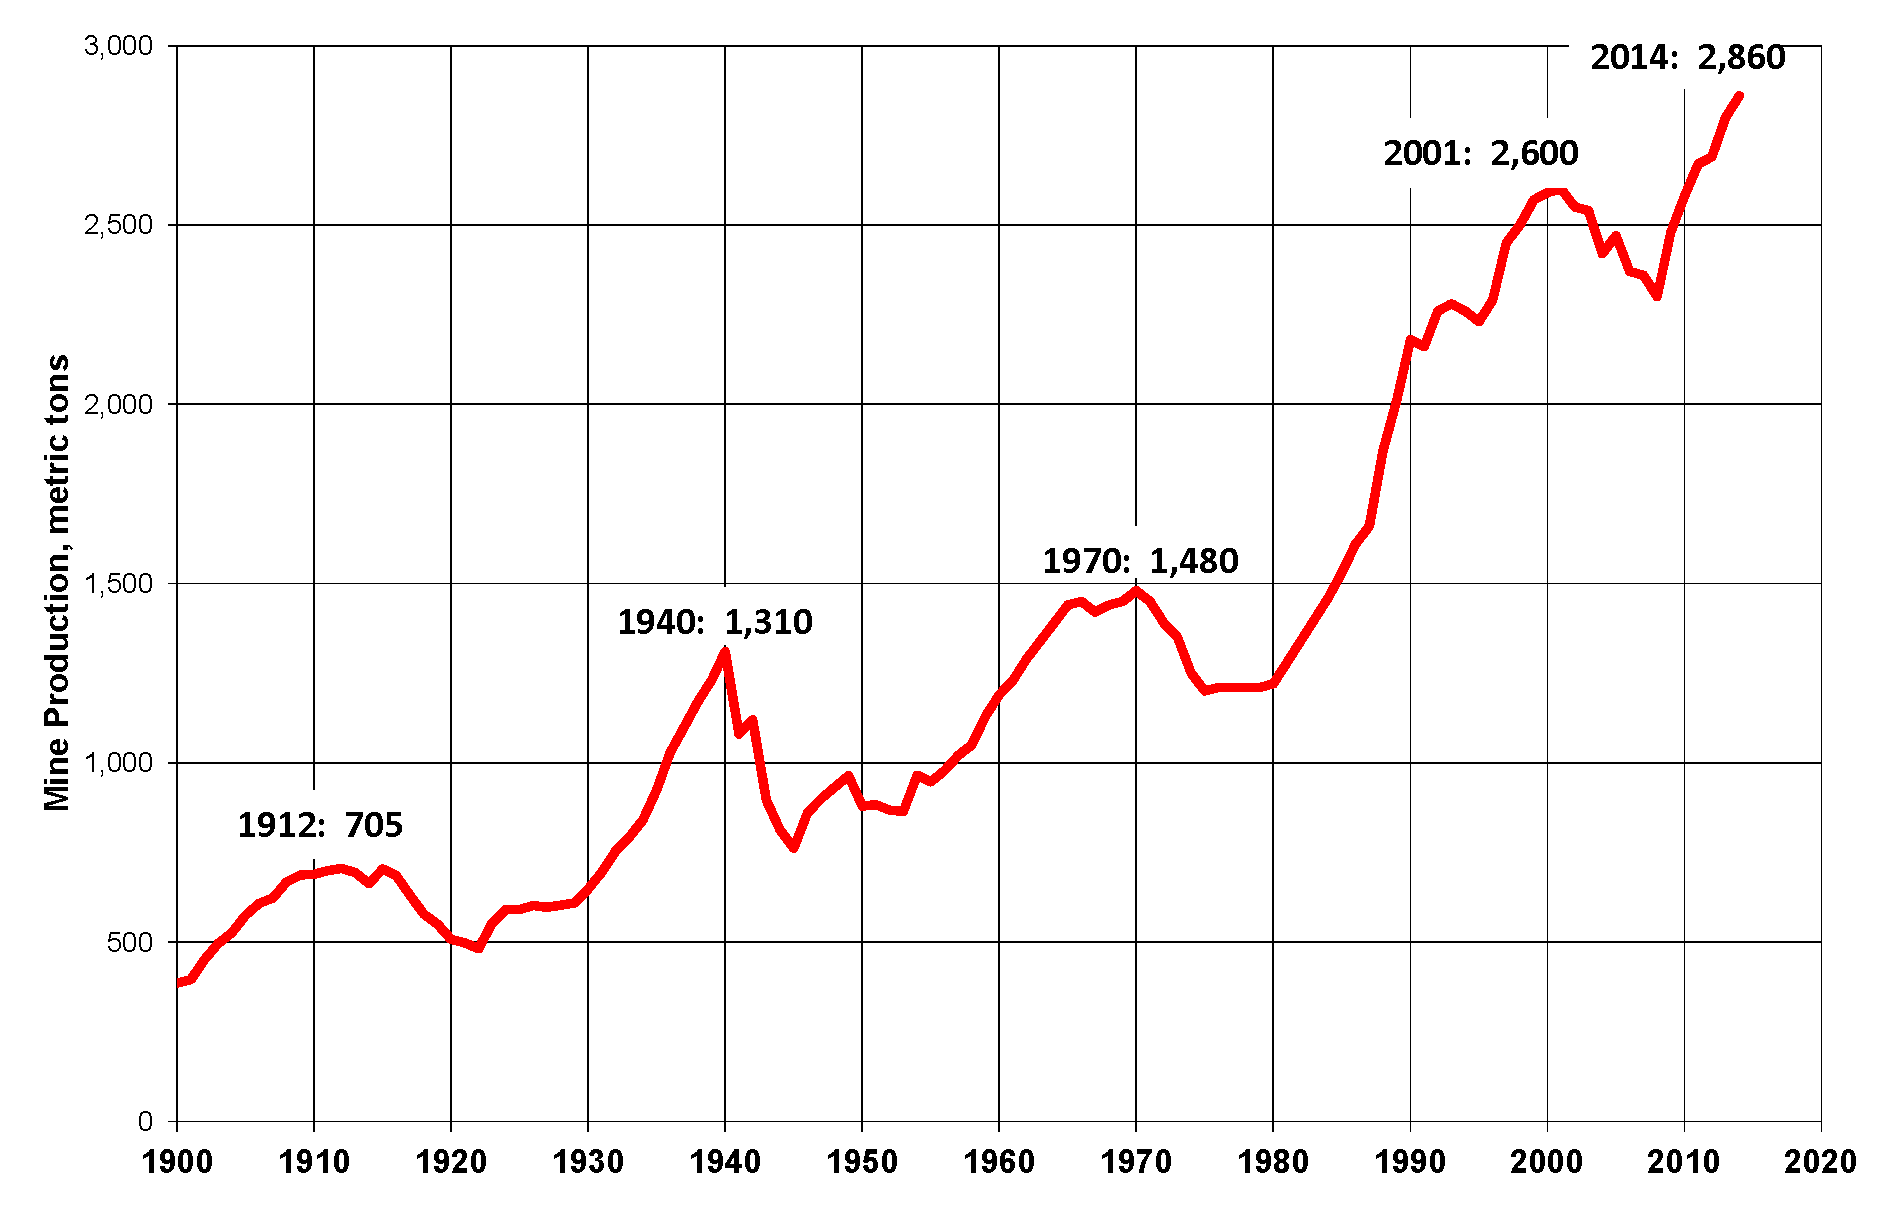 World_Gold_Production_1900-2014.png